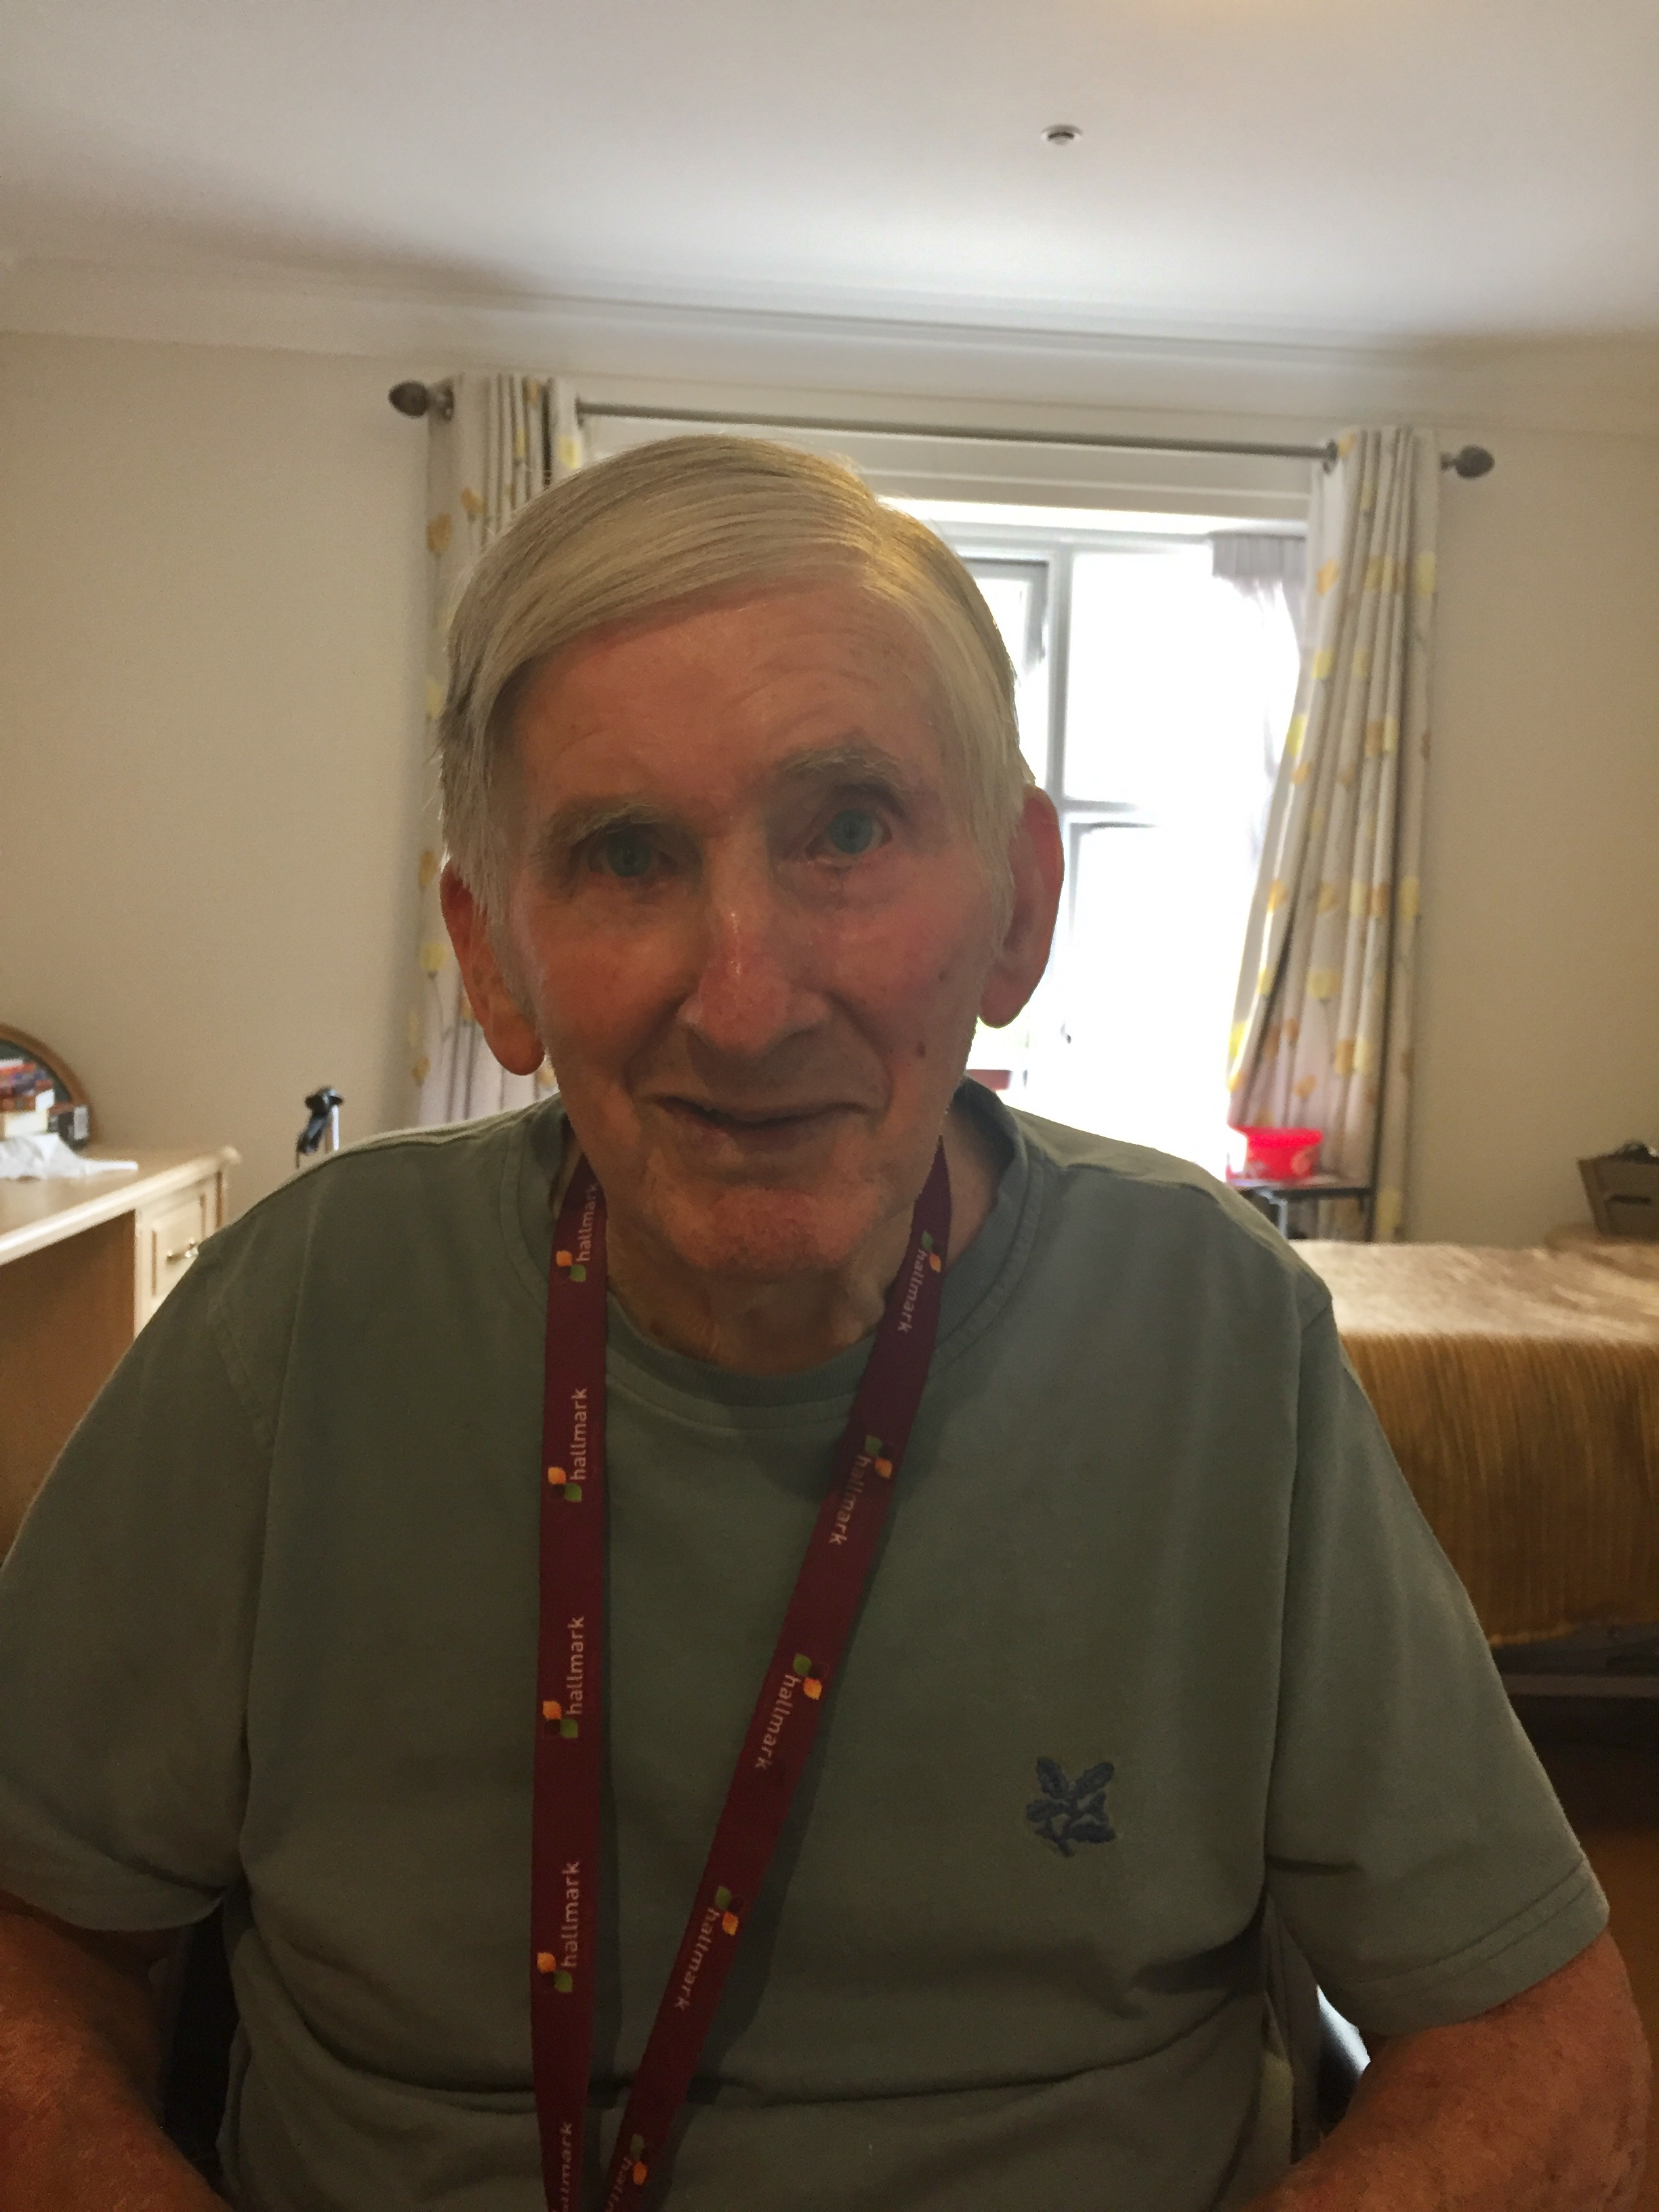 Les Payne, 88, a resident at Maycroft Manor Care Home